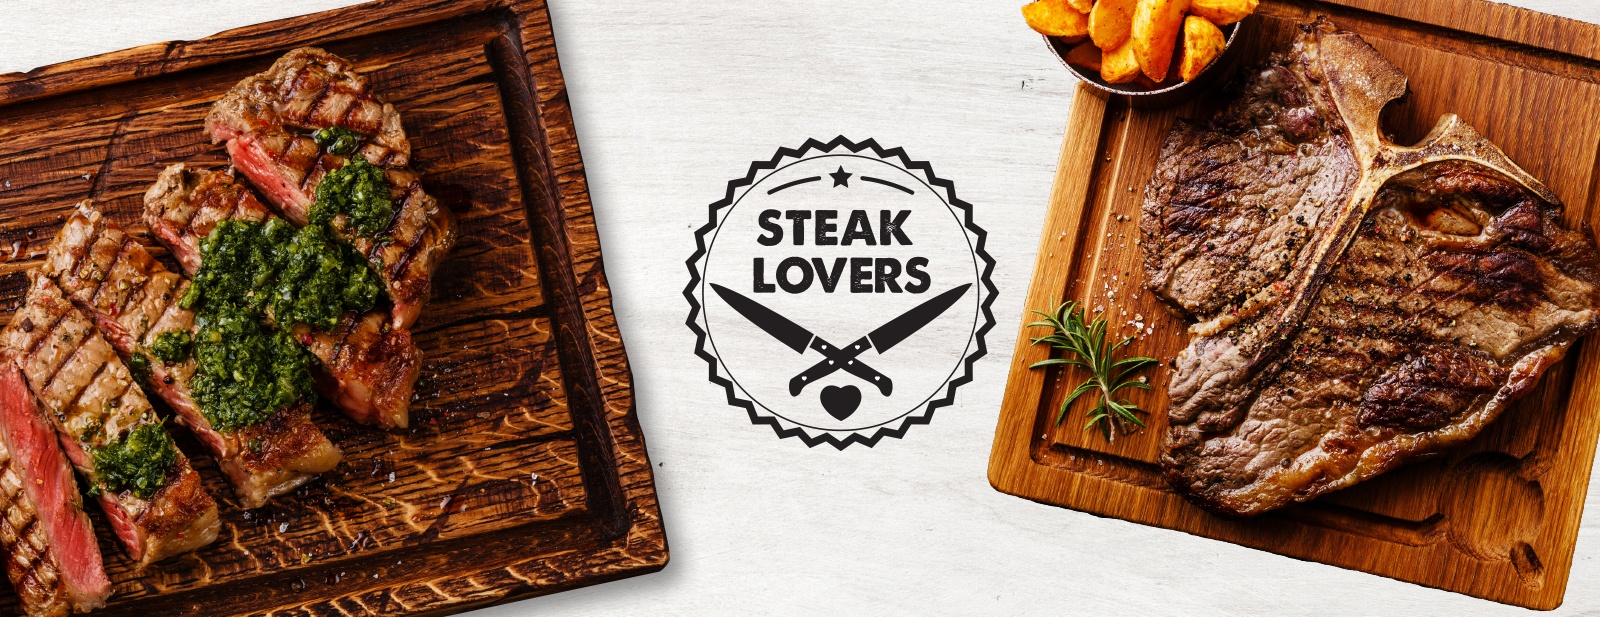 steak lover